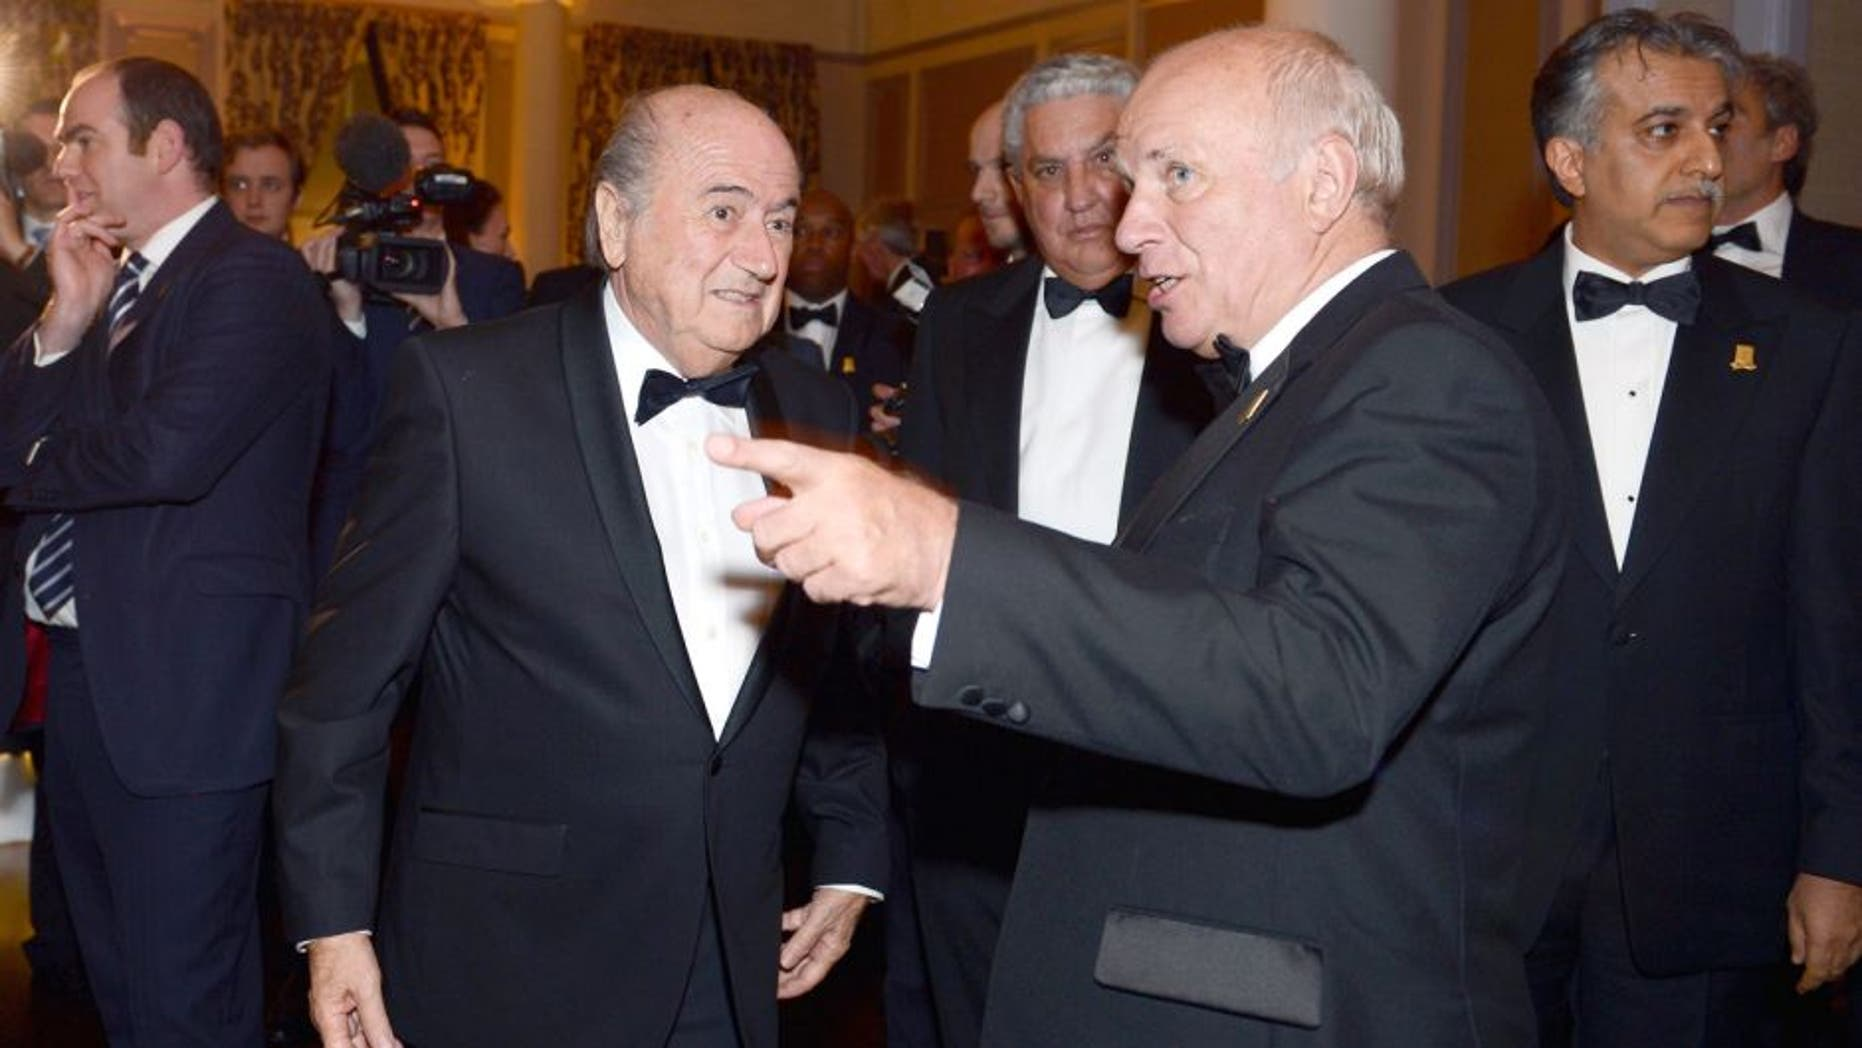 LONDON, ENGLAND - OCTOBER 26: Greg Dyke, FA Chairman talks to Joseph Blatter, FIFA President during the FA150 Gala Dinner commemorating the Football Association's 150th year at the Grand Connaught Rooms on October 26, 2013 in London, England. (Photo by Michael Regan/The FA via Getty Images)